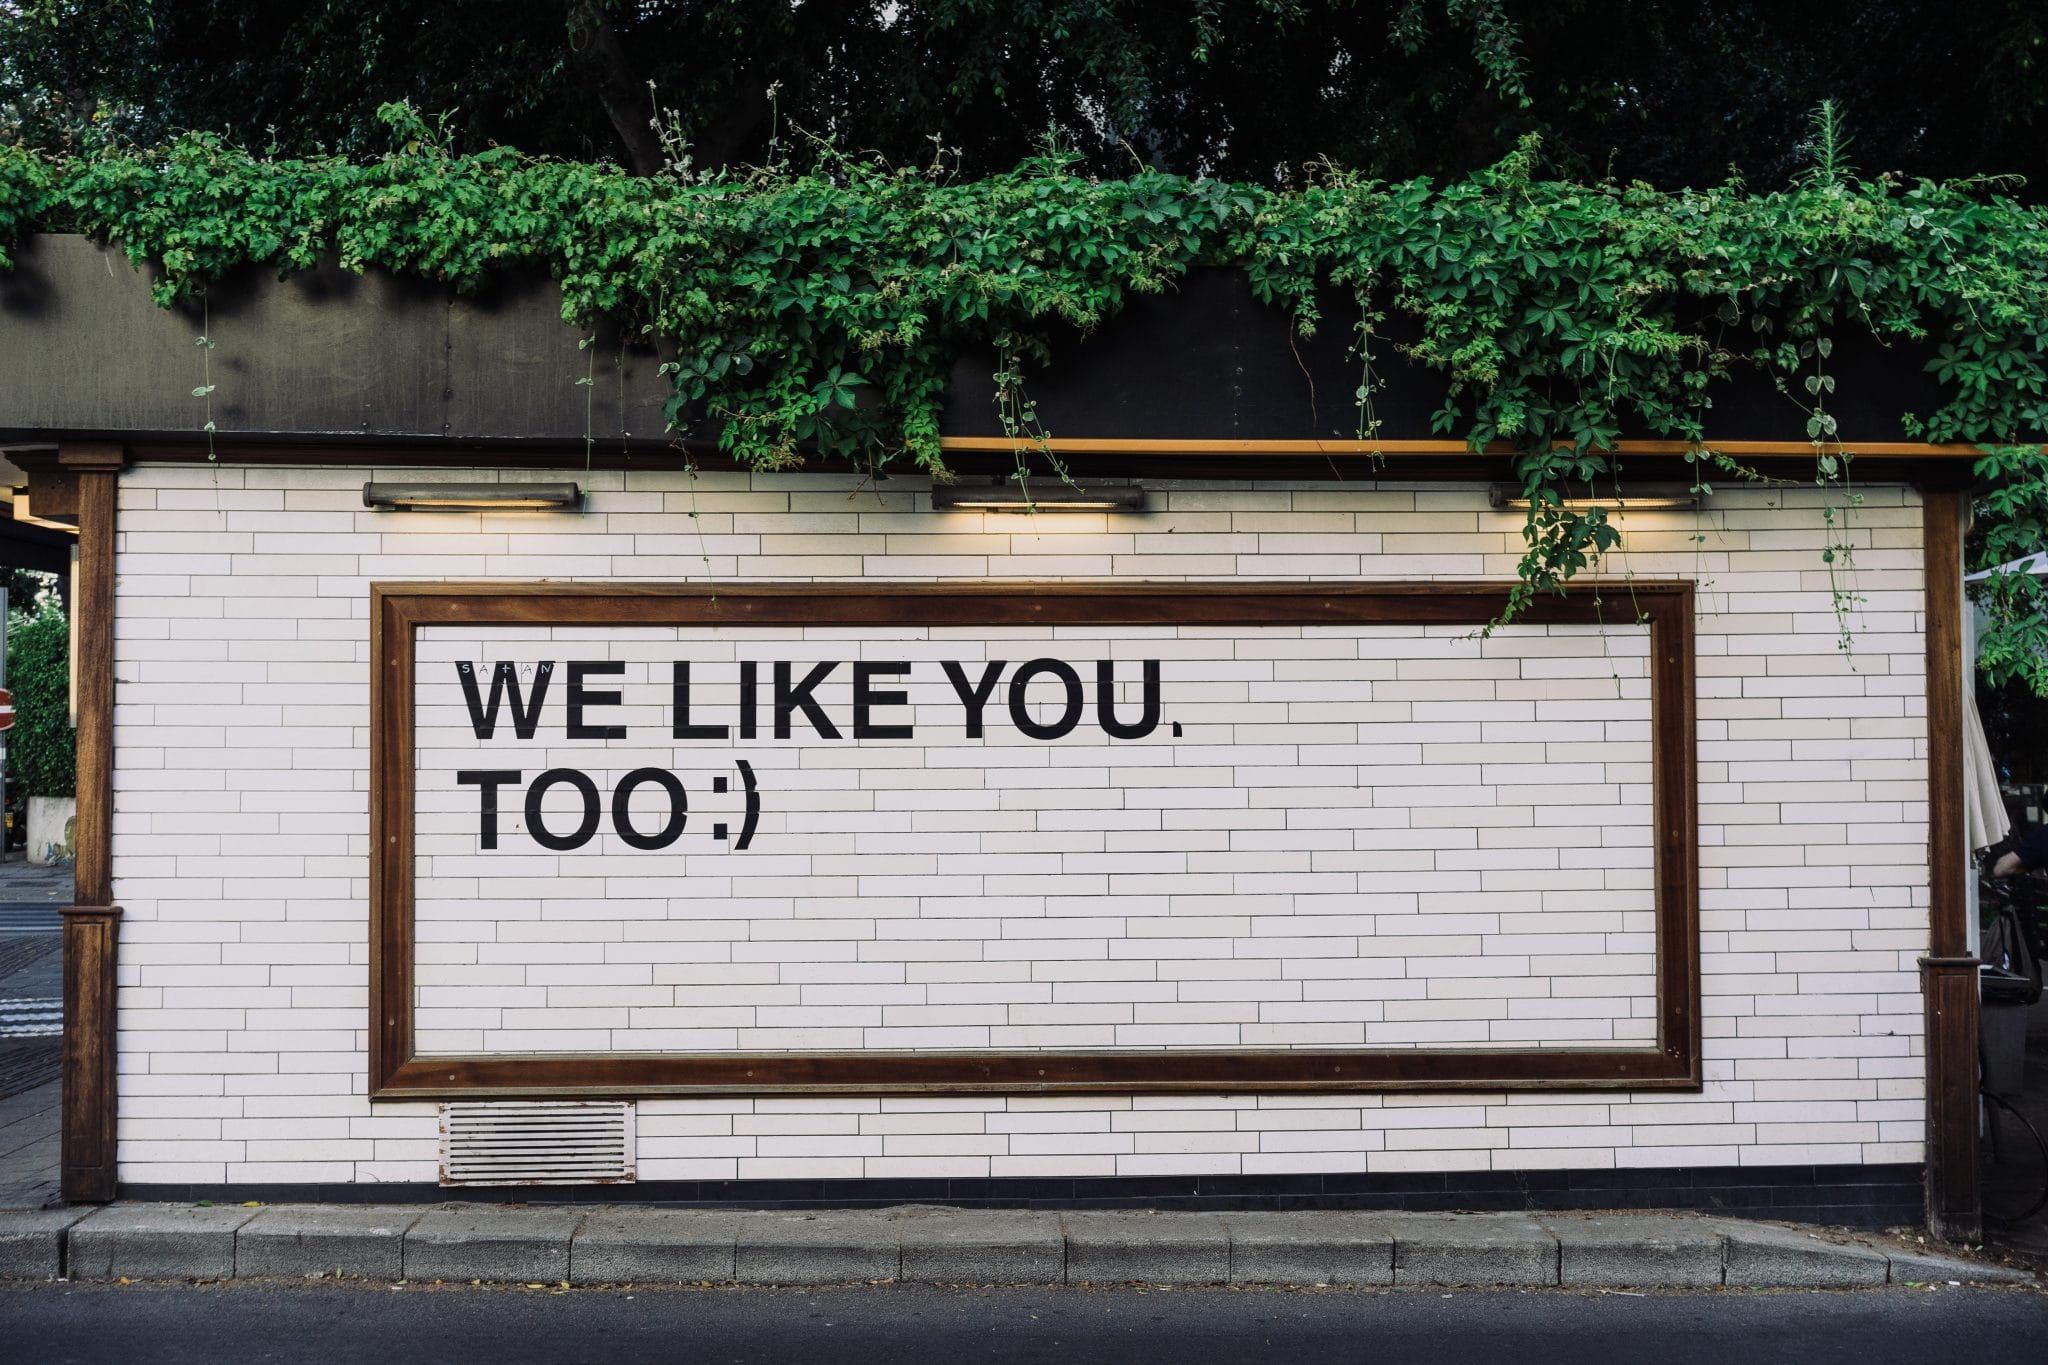 we like you too - reputation management